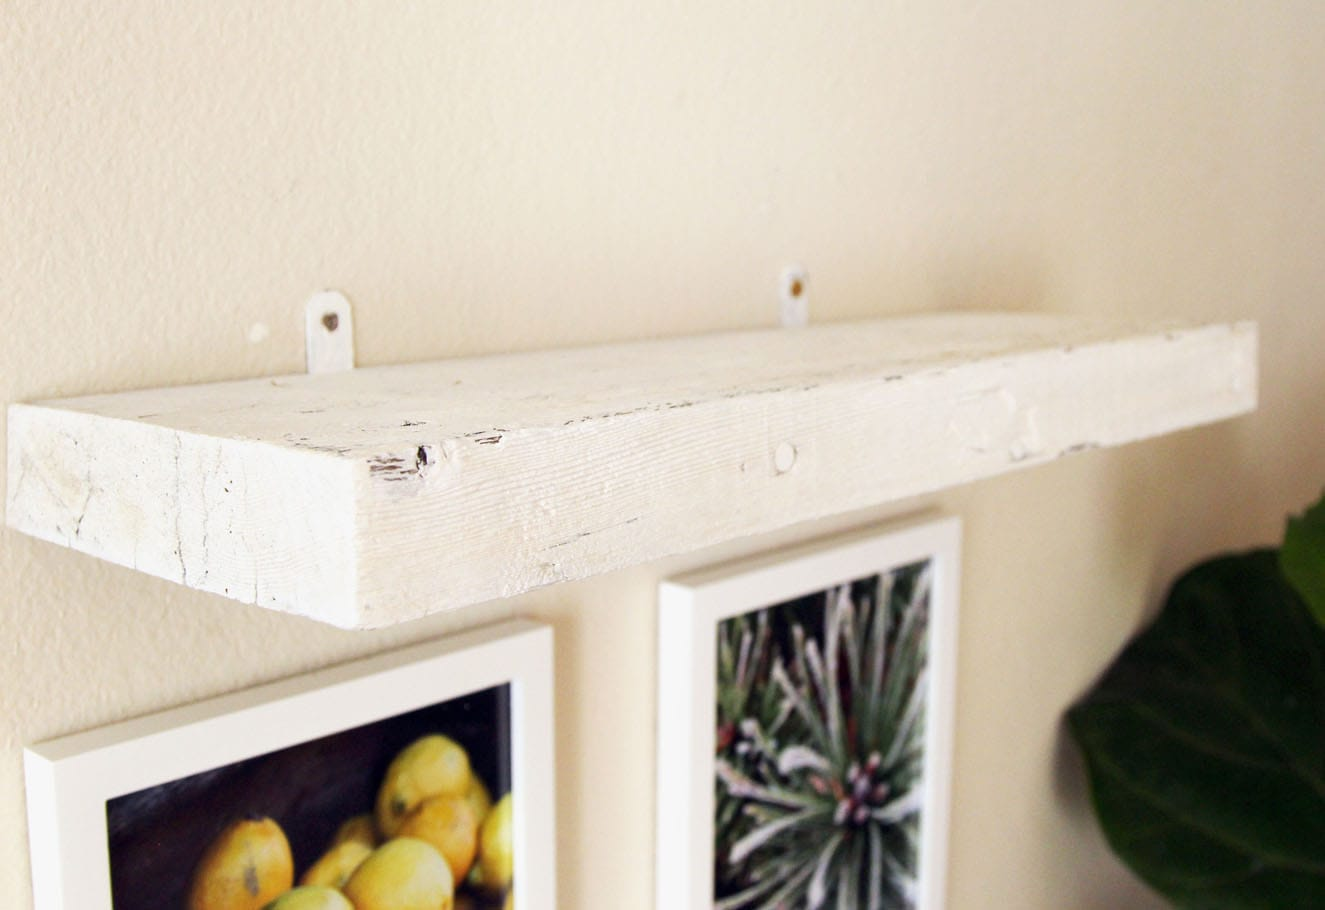 Easy Faux Diy Floating Shelves 5 In 15 Minutes A Piece